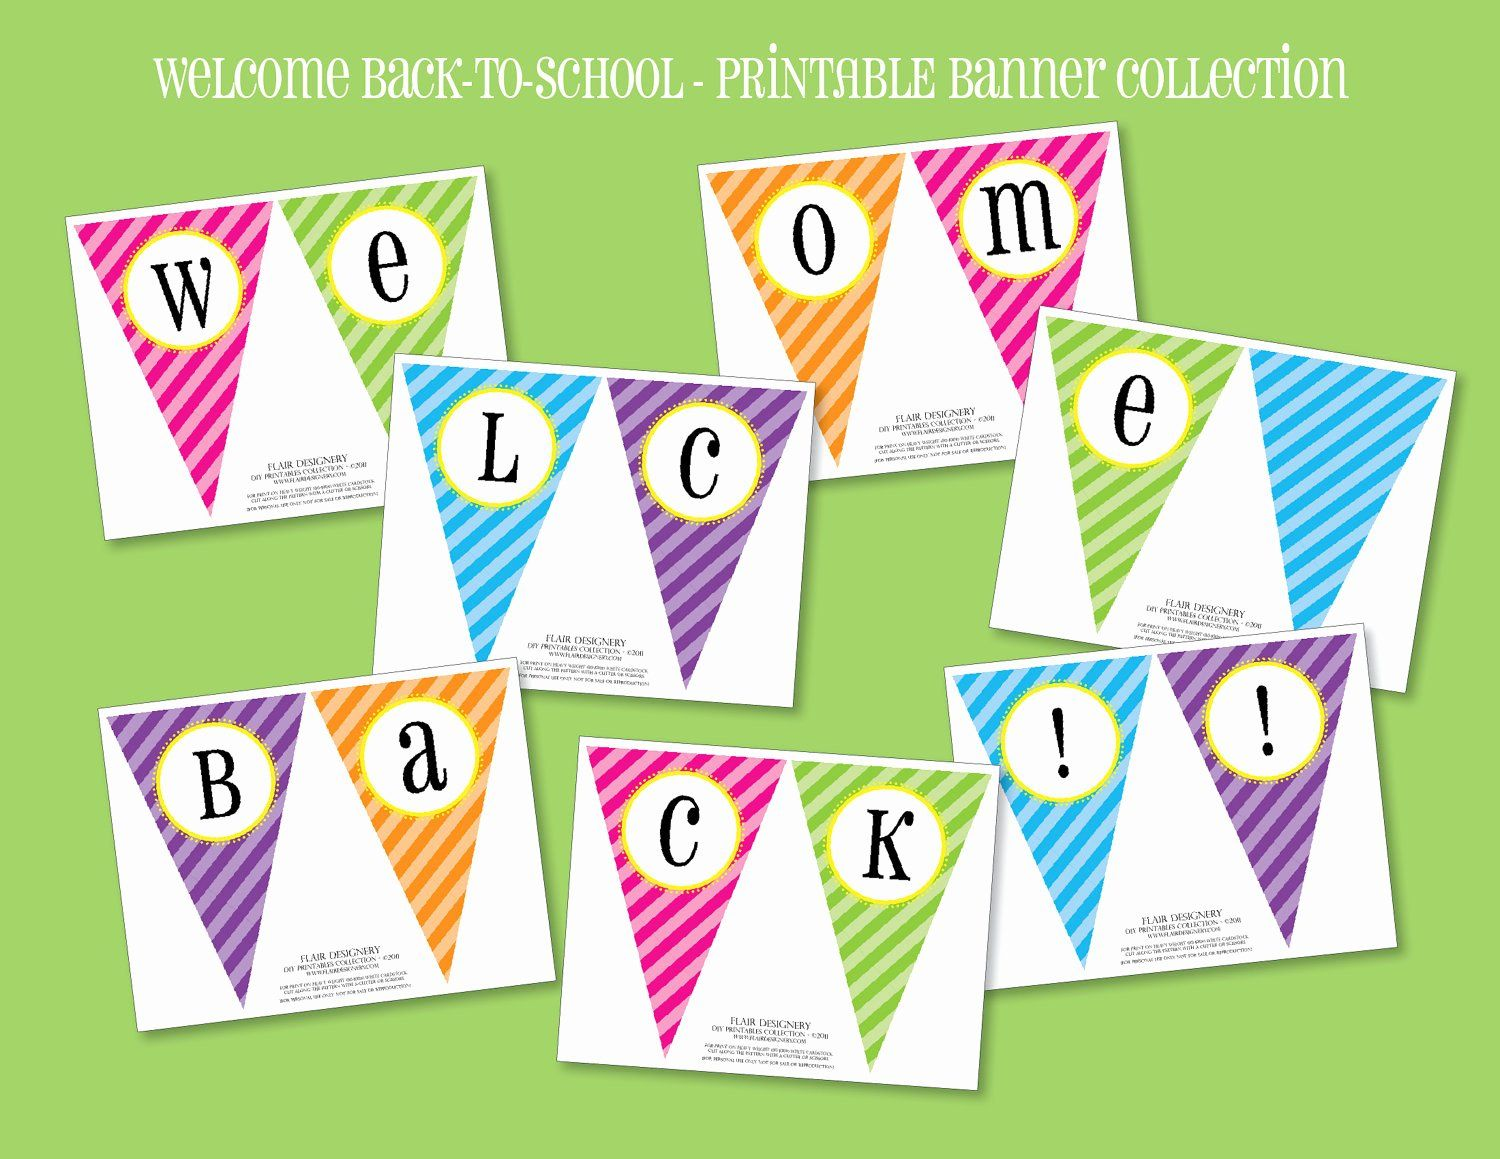 Banner Template For Word Inspirational Wel E Back Banner Printable Free Tierianhenry Welcome Back Banner Welcome Banners Printable Banner Template